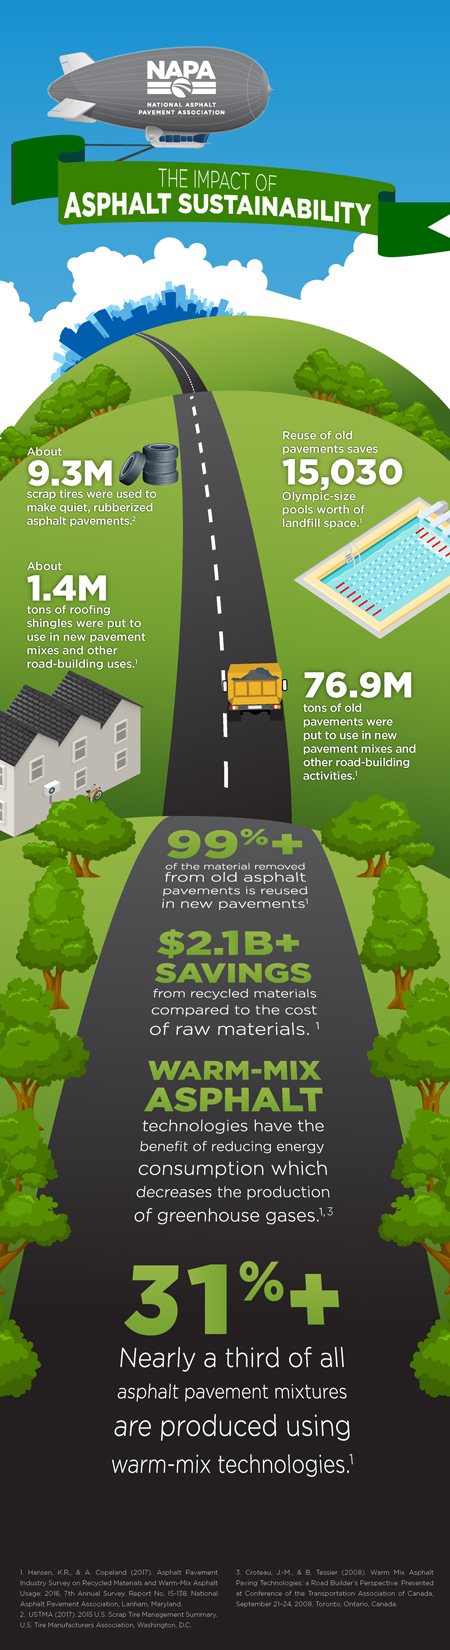 The Impact of Asphalt Sustainability Infographic